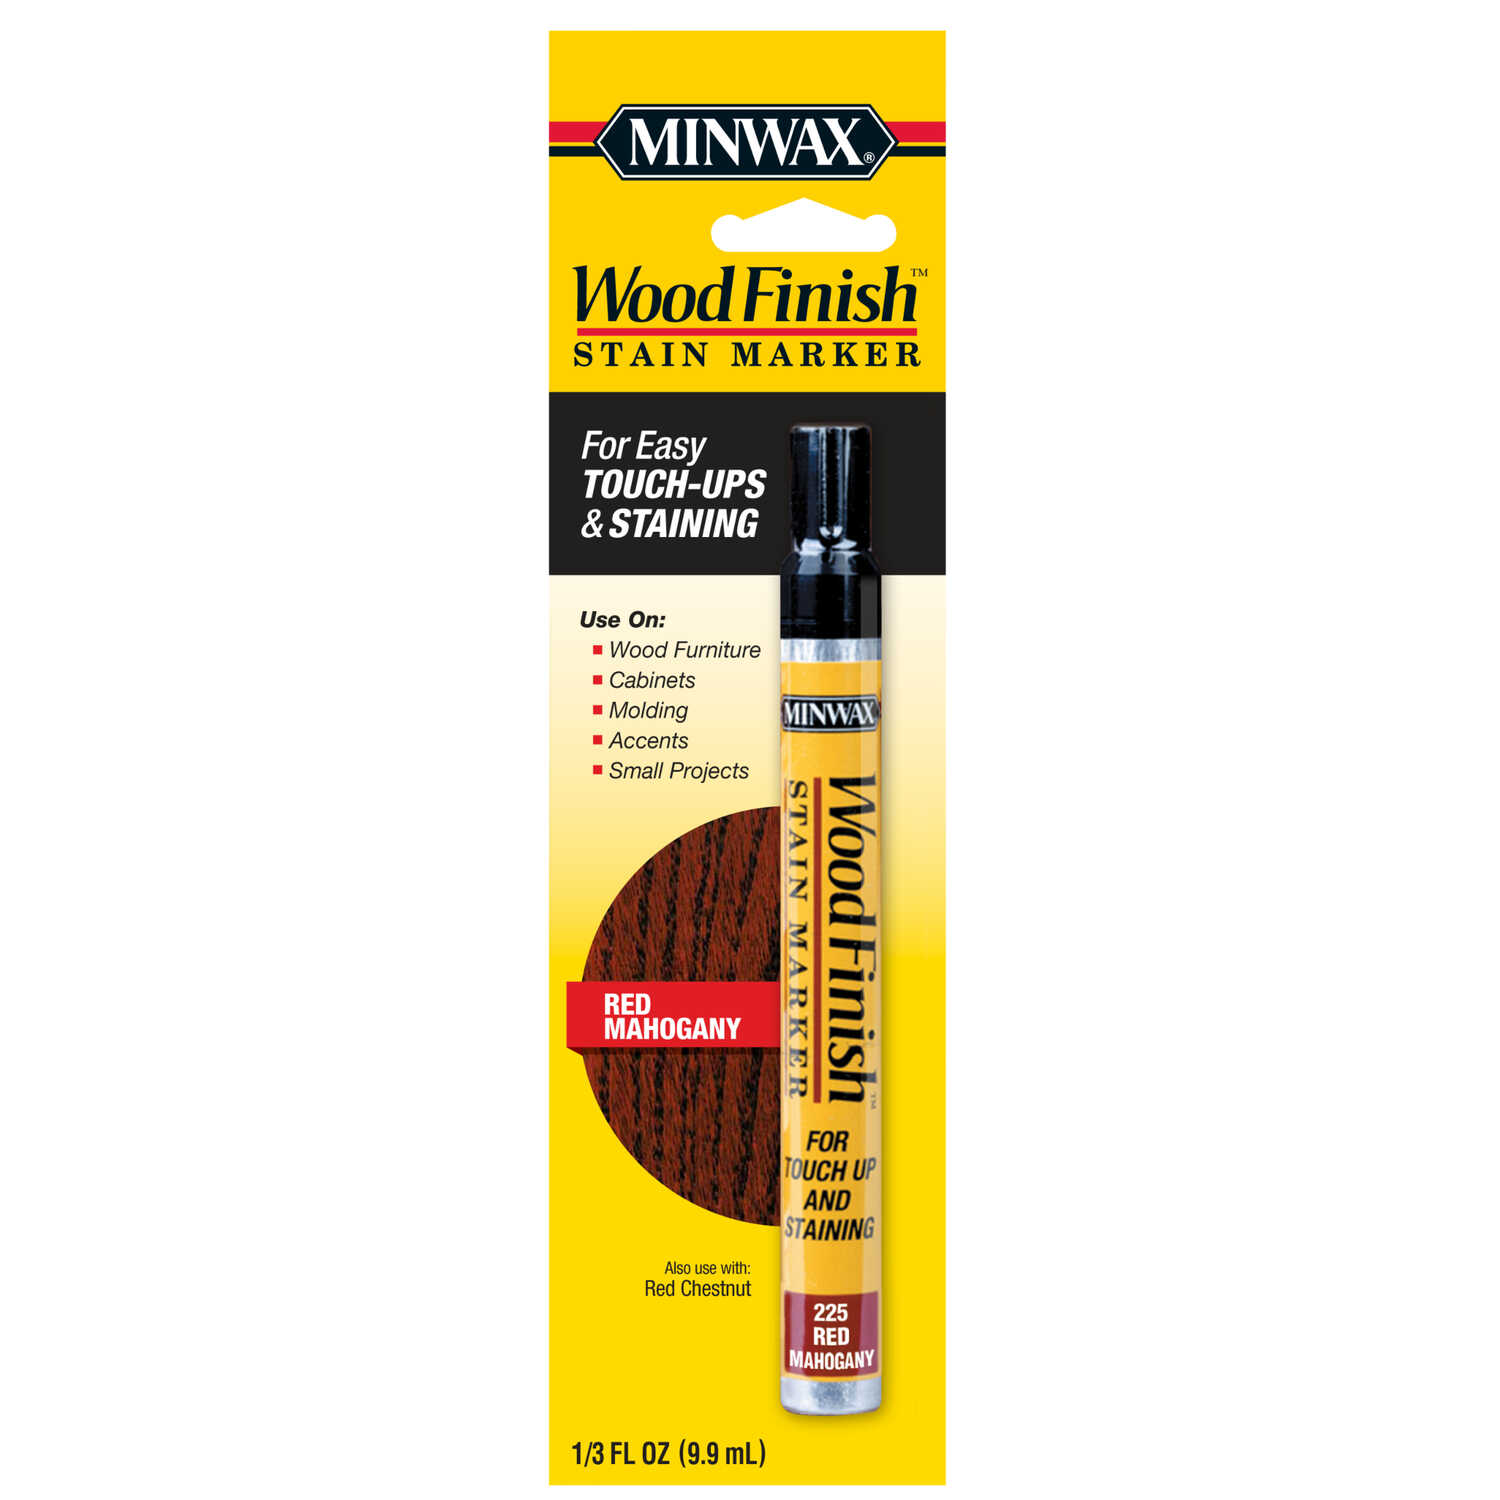 Minwax  Wood Finish  Semi-Transparent  Red Mahogany  Oil-Based  Stain Marker  0.33 oz.